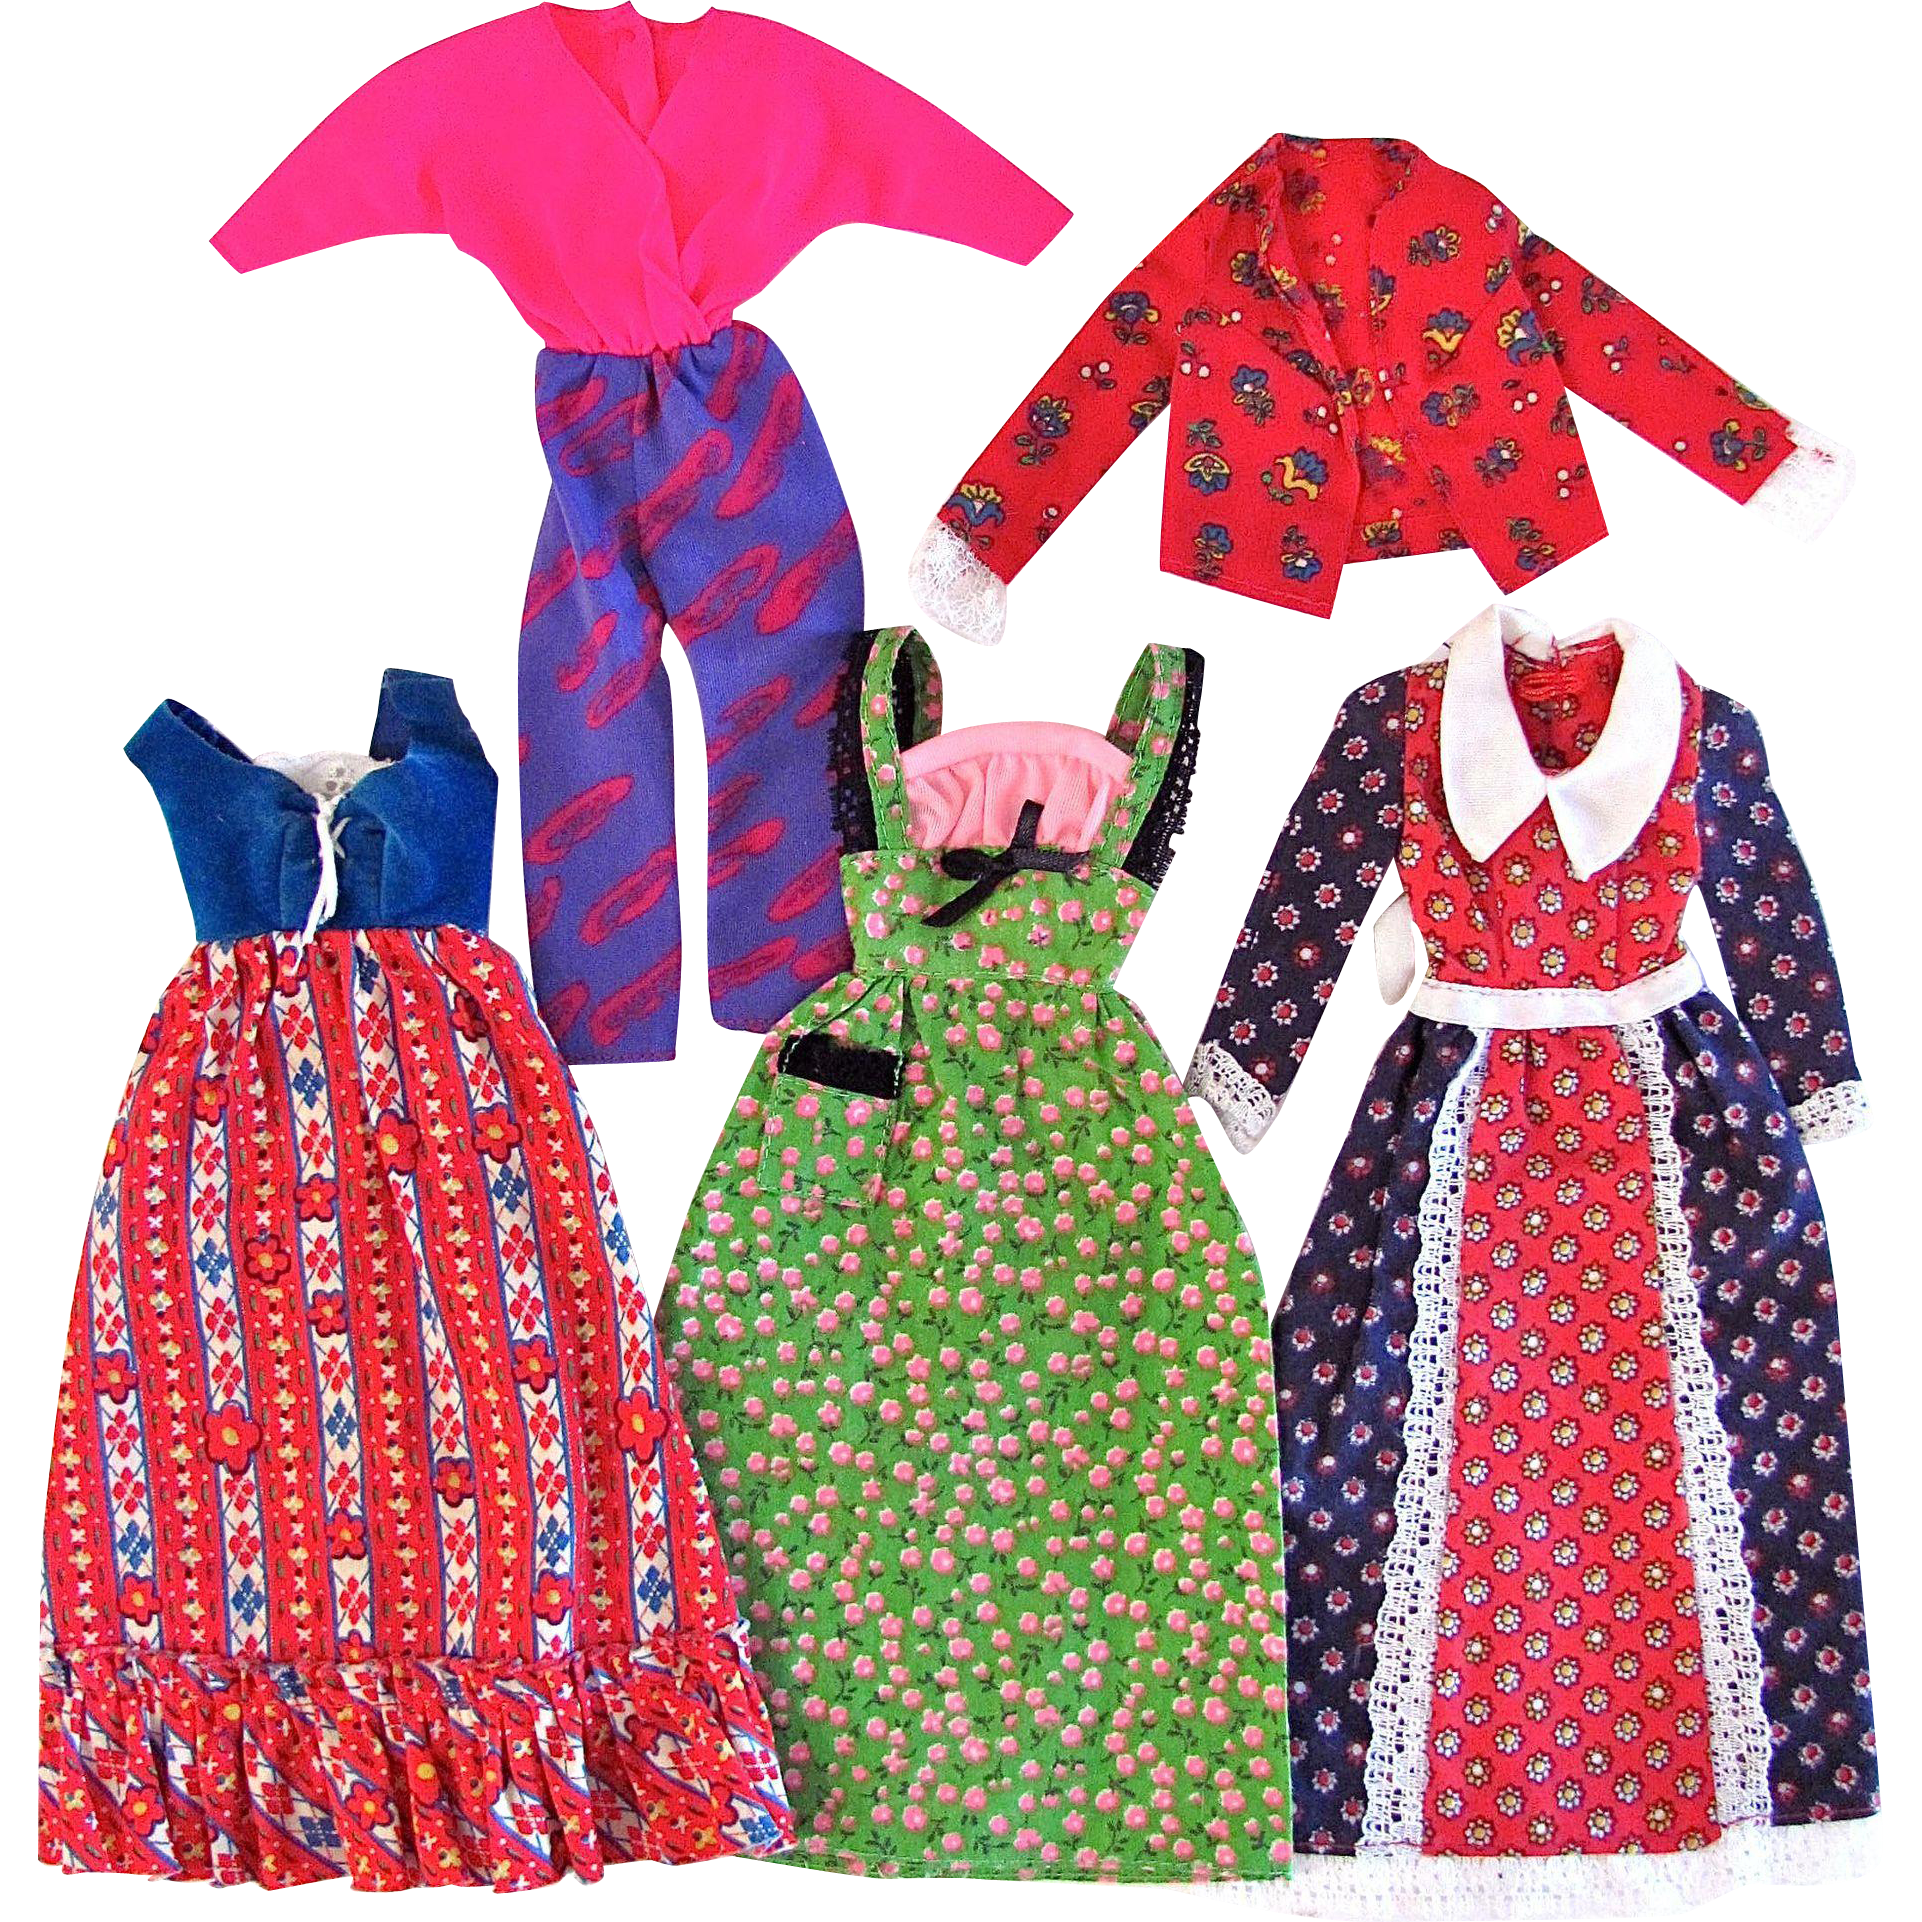 Barbie Best Buy Fashion Assortment – Dresses, Jacket, Top – Vintage 1970s, Plus Additional 1980s Items